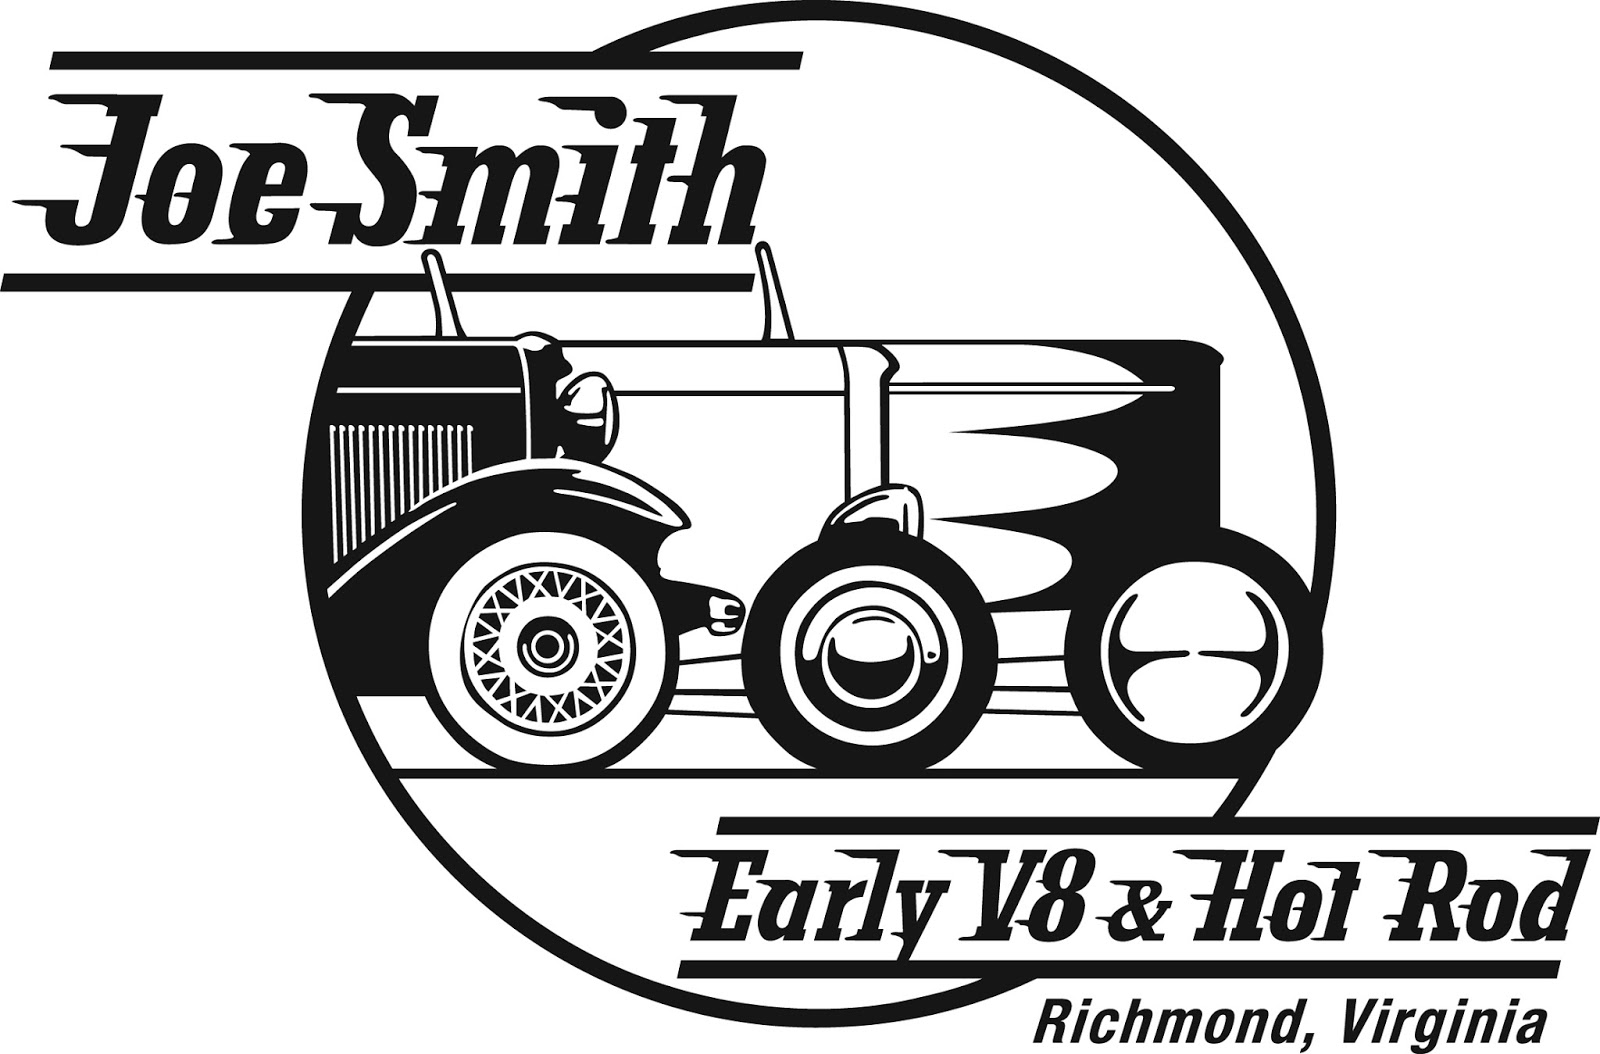 Joe Smith Early V8 Amp Hot Rod